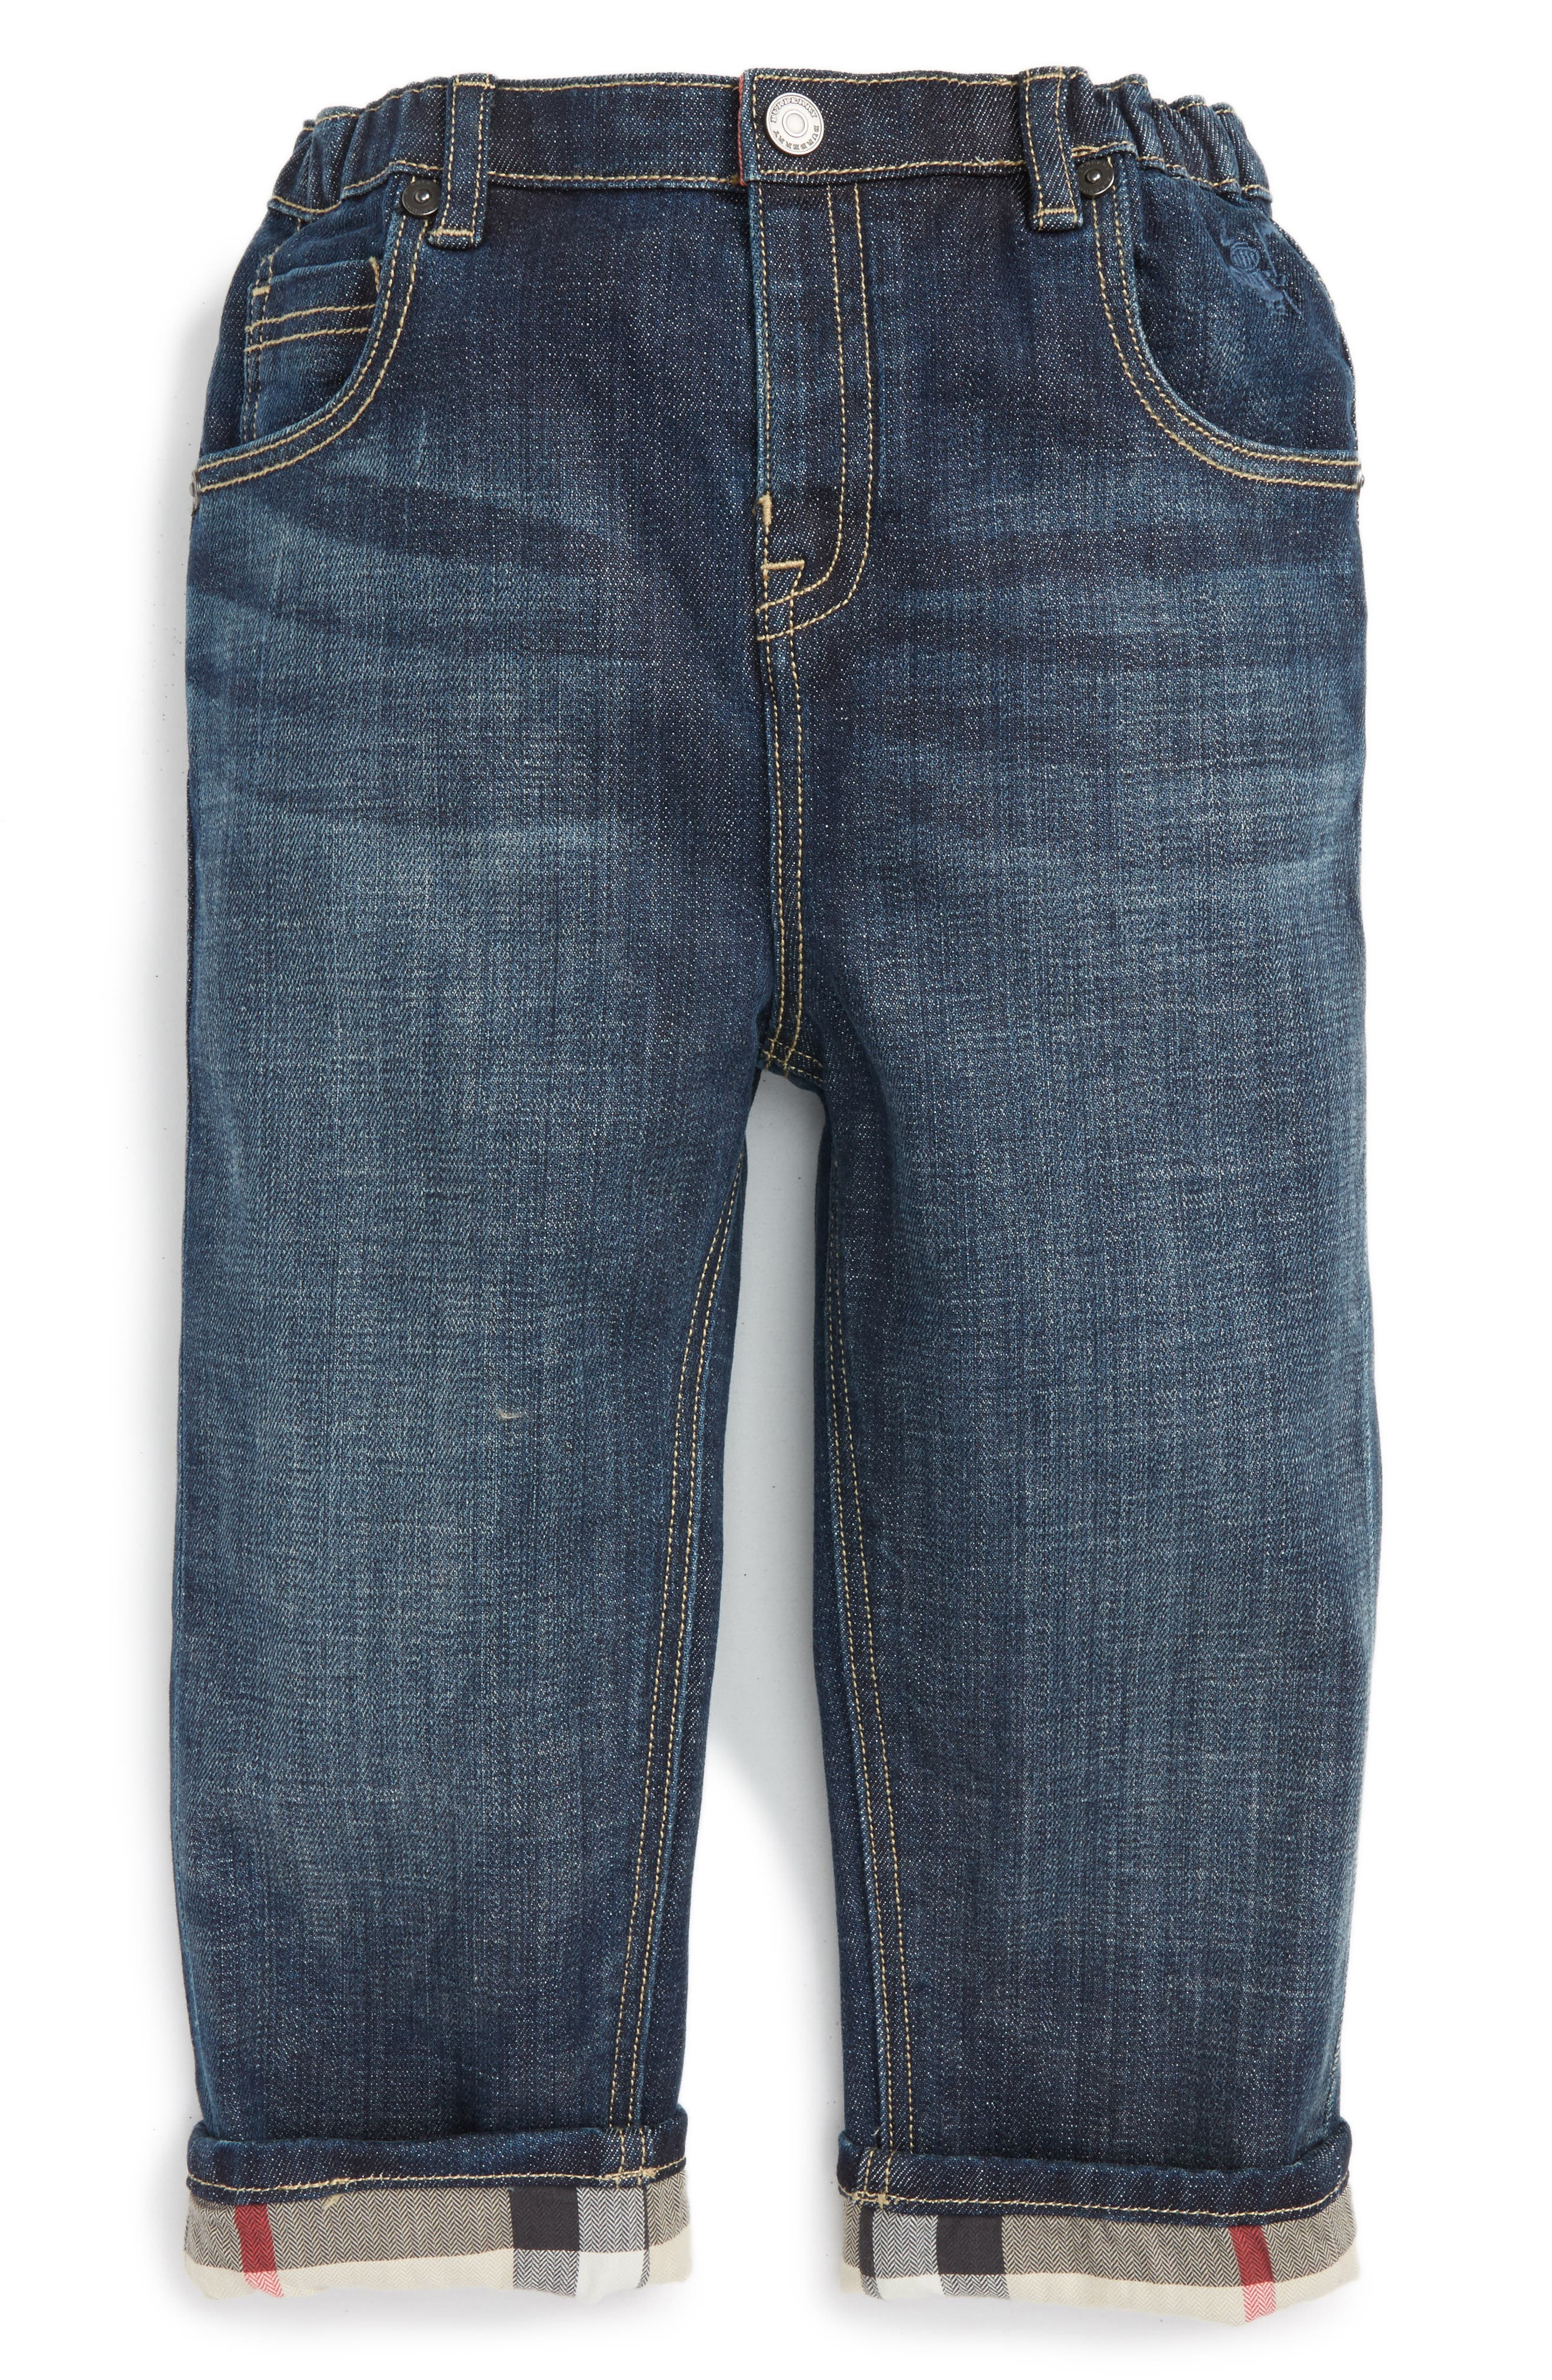 Pierre Check Lined Jeans,                             Alternate thumbnail 2, color,                             400